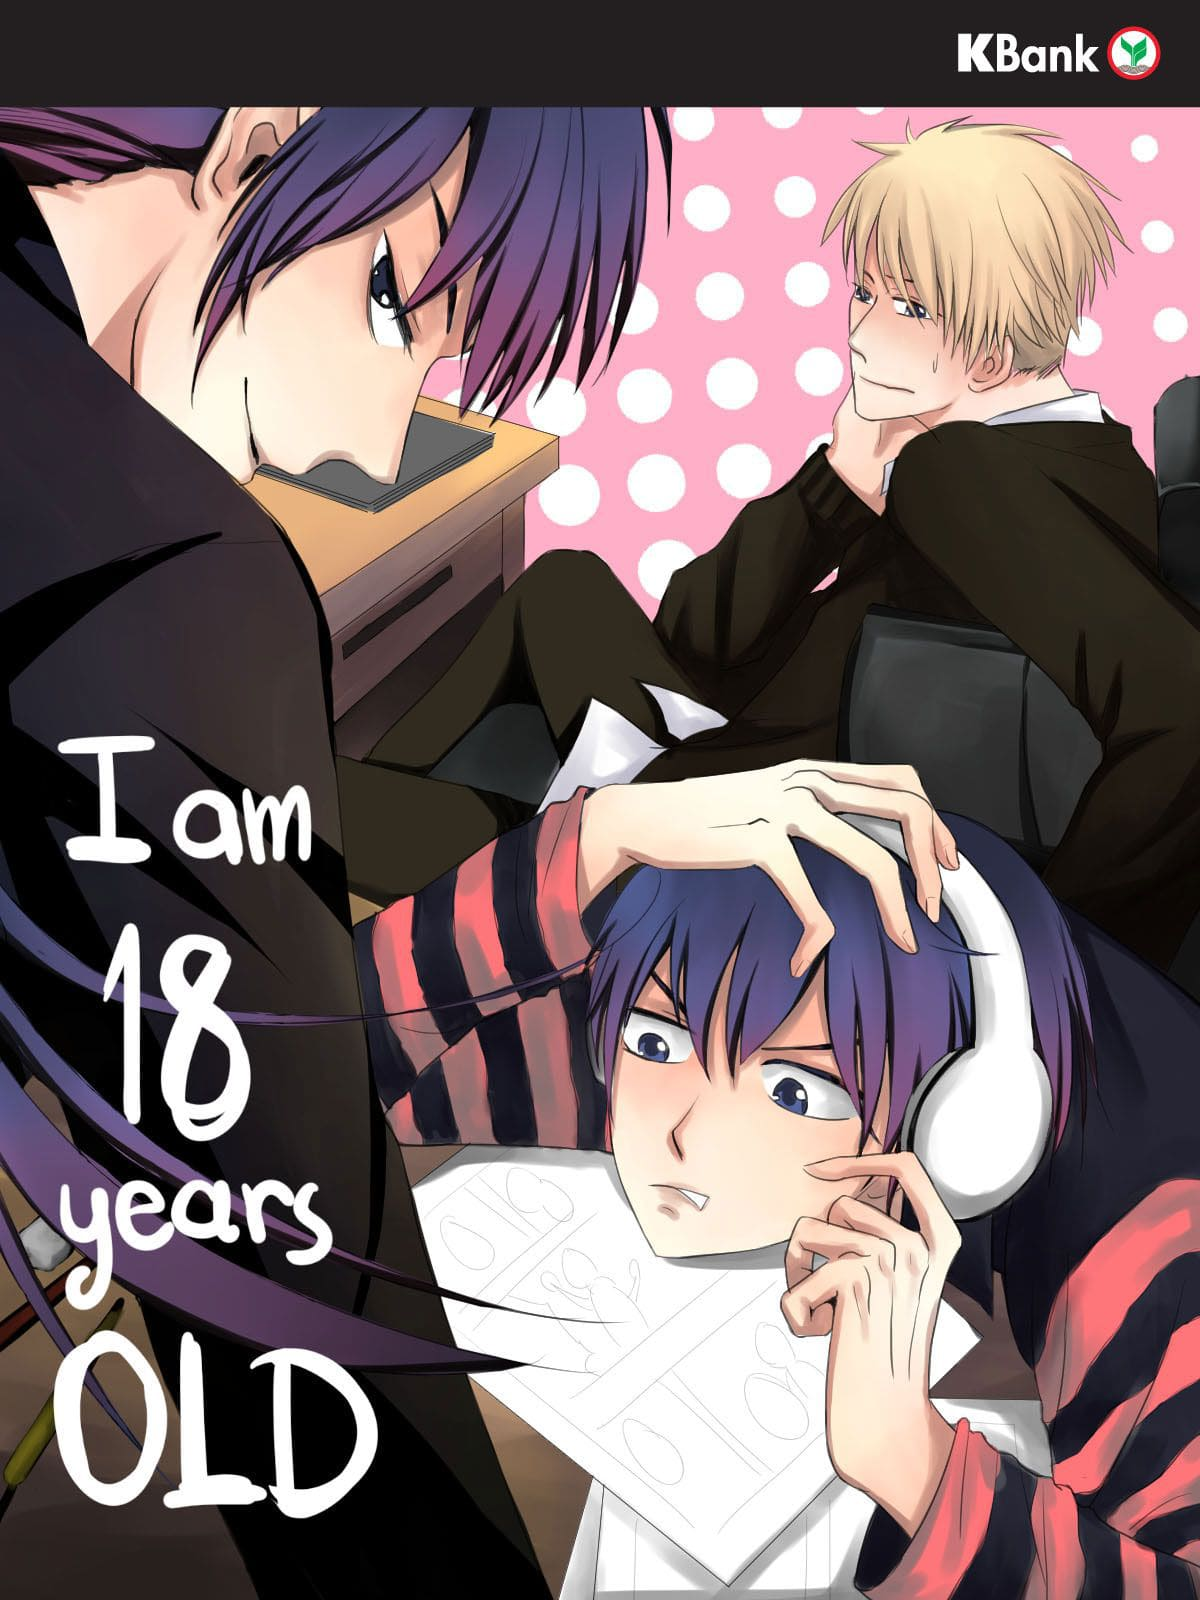 I'm 18  years old (KBank Comics Contest)